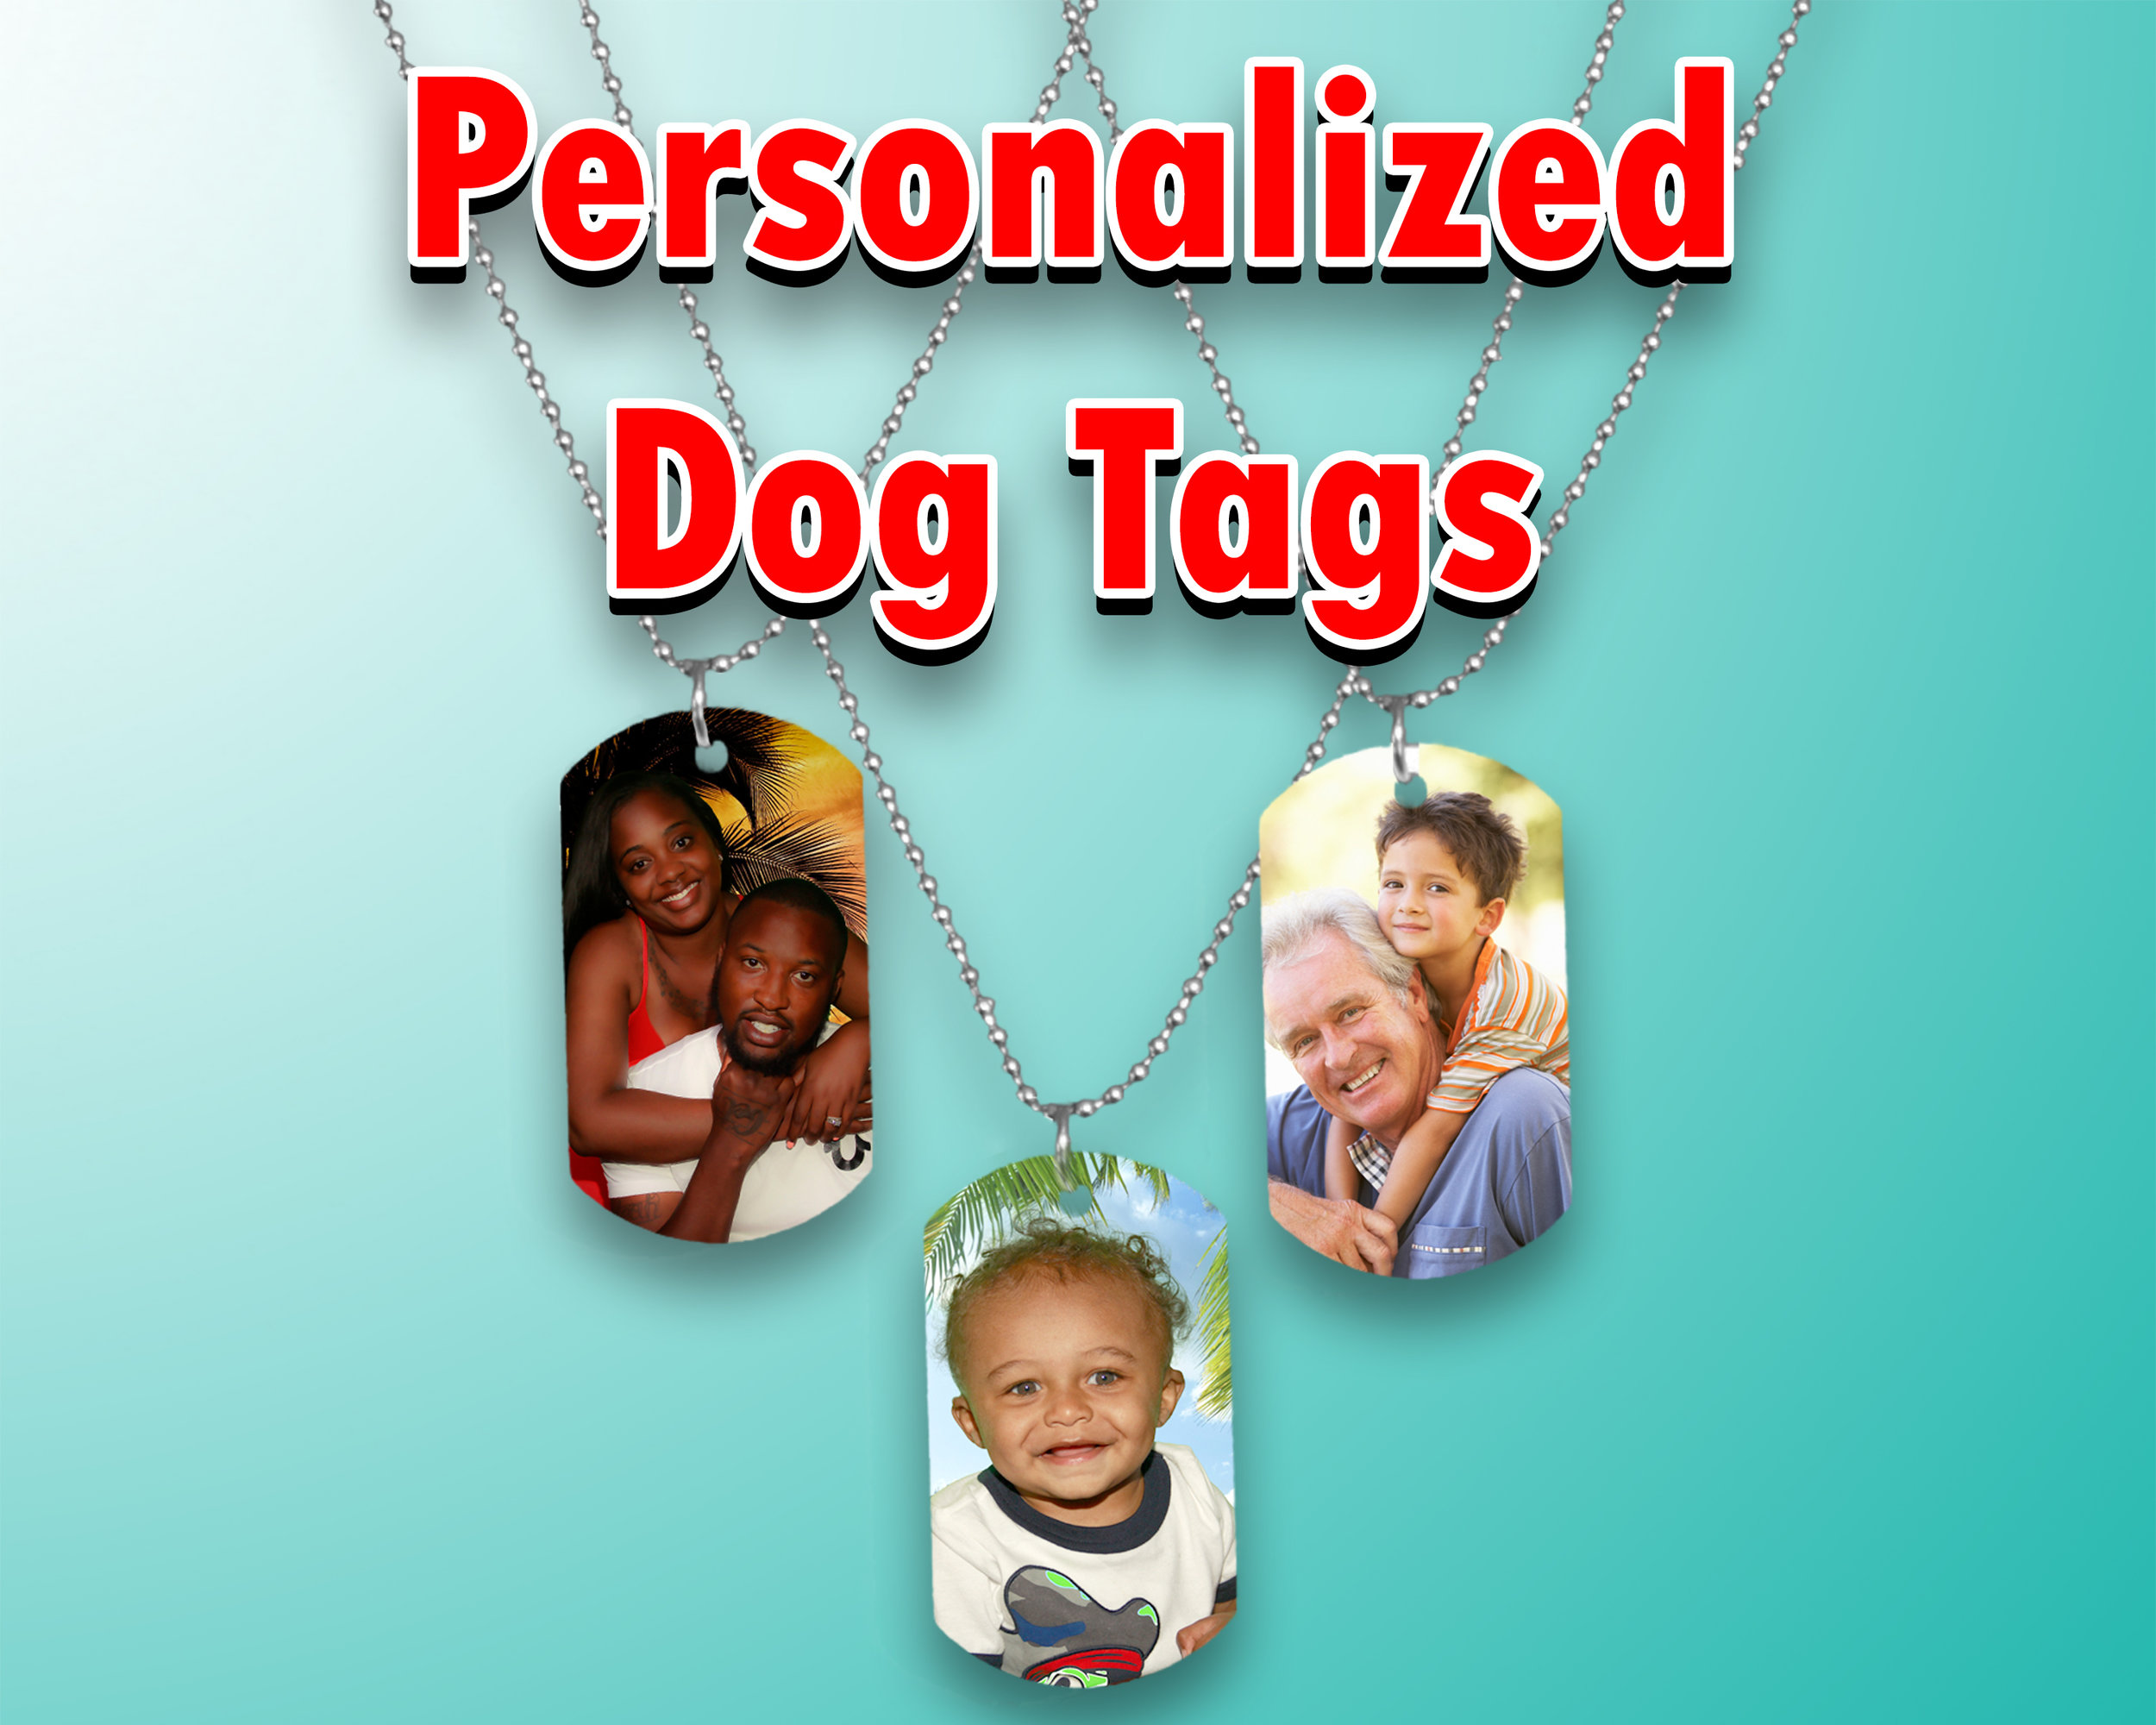 Personalized Dog Tags.jpg